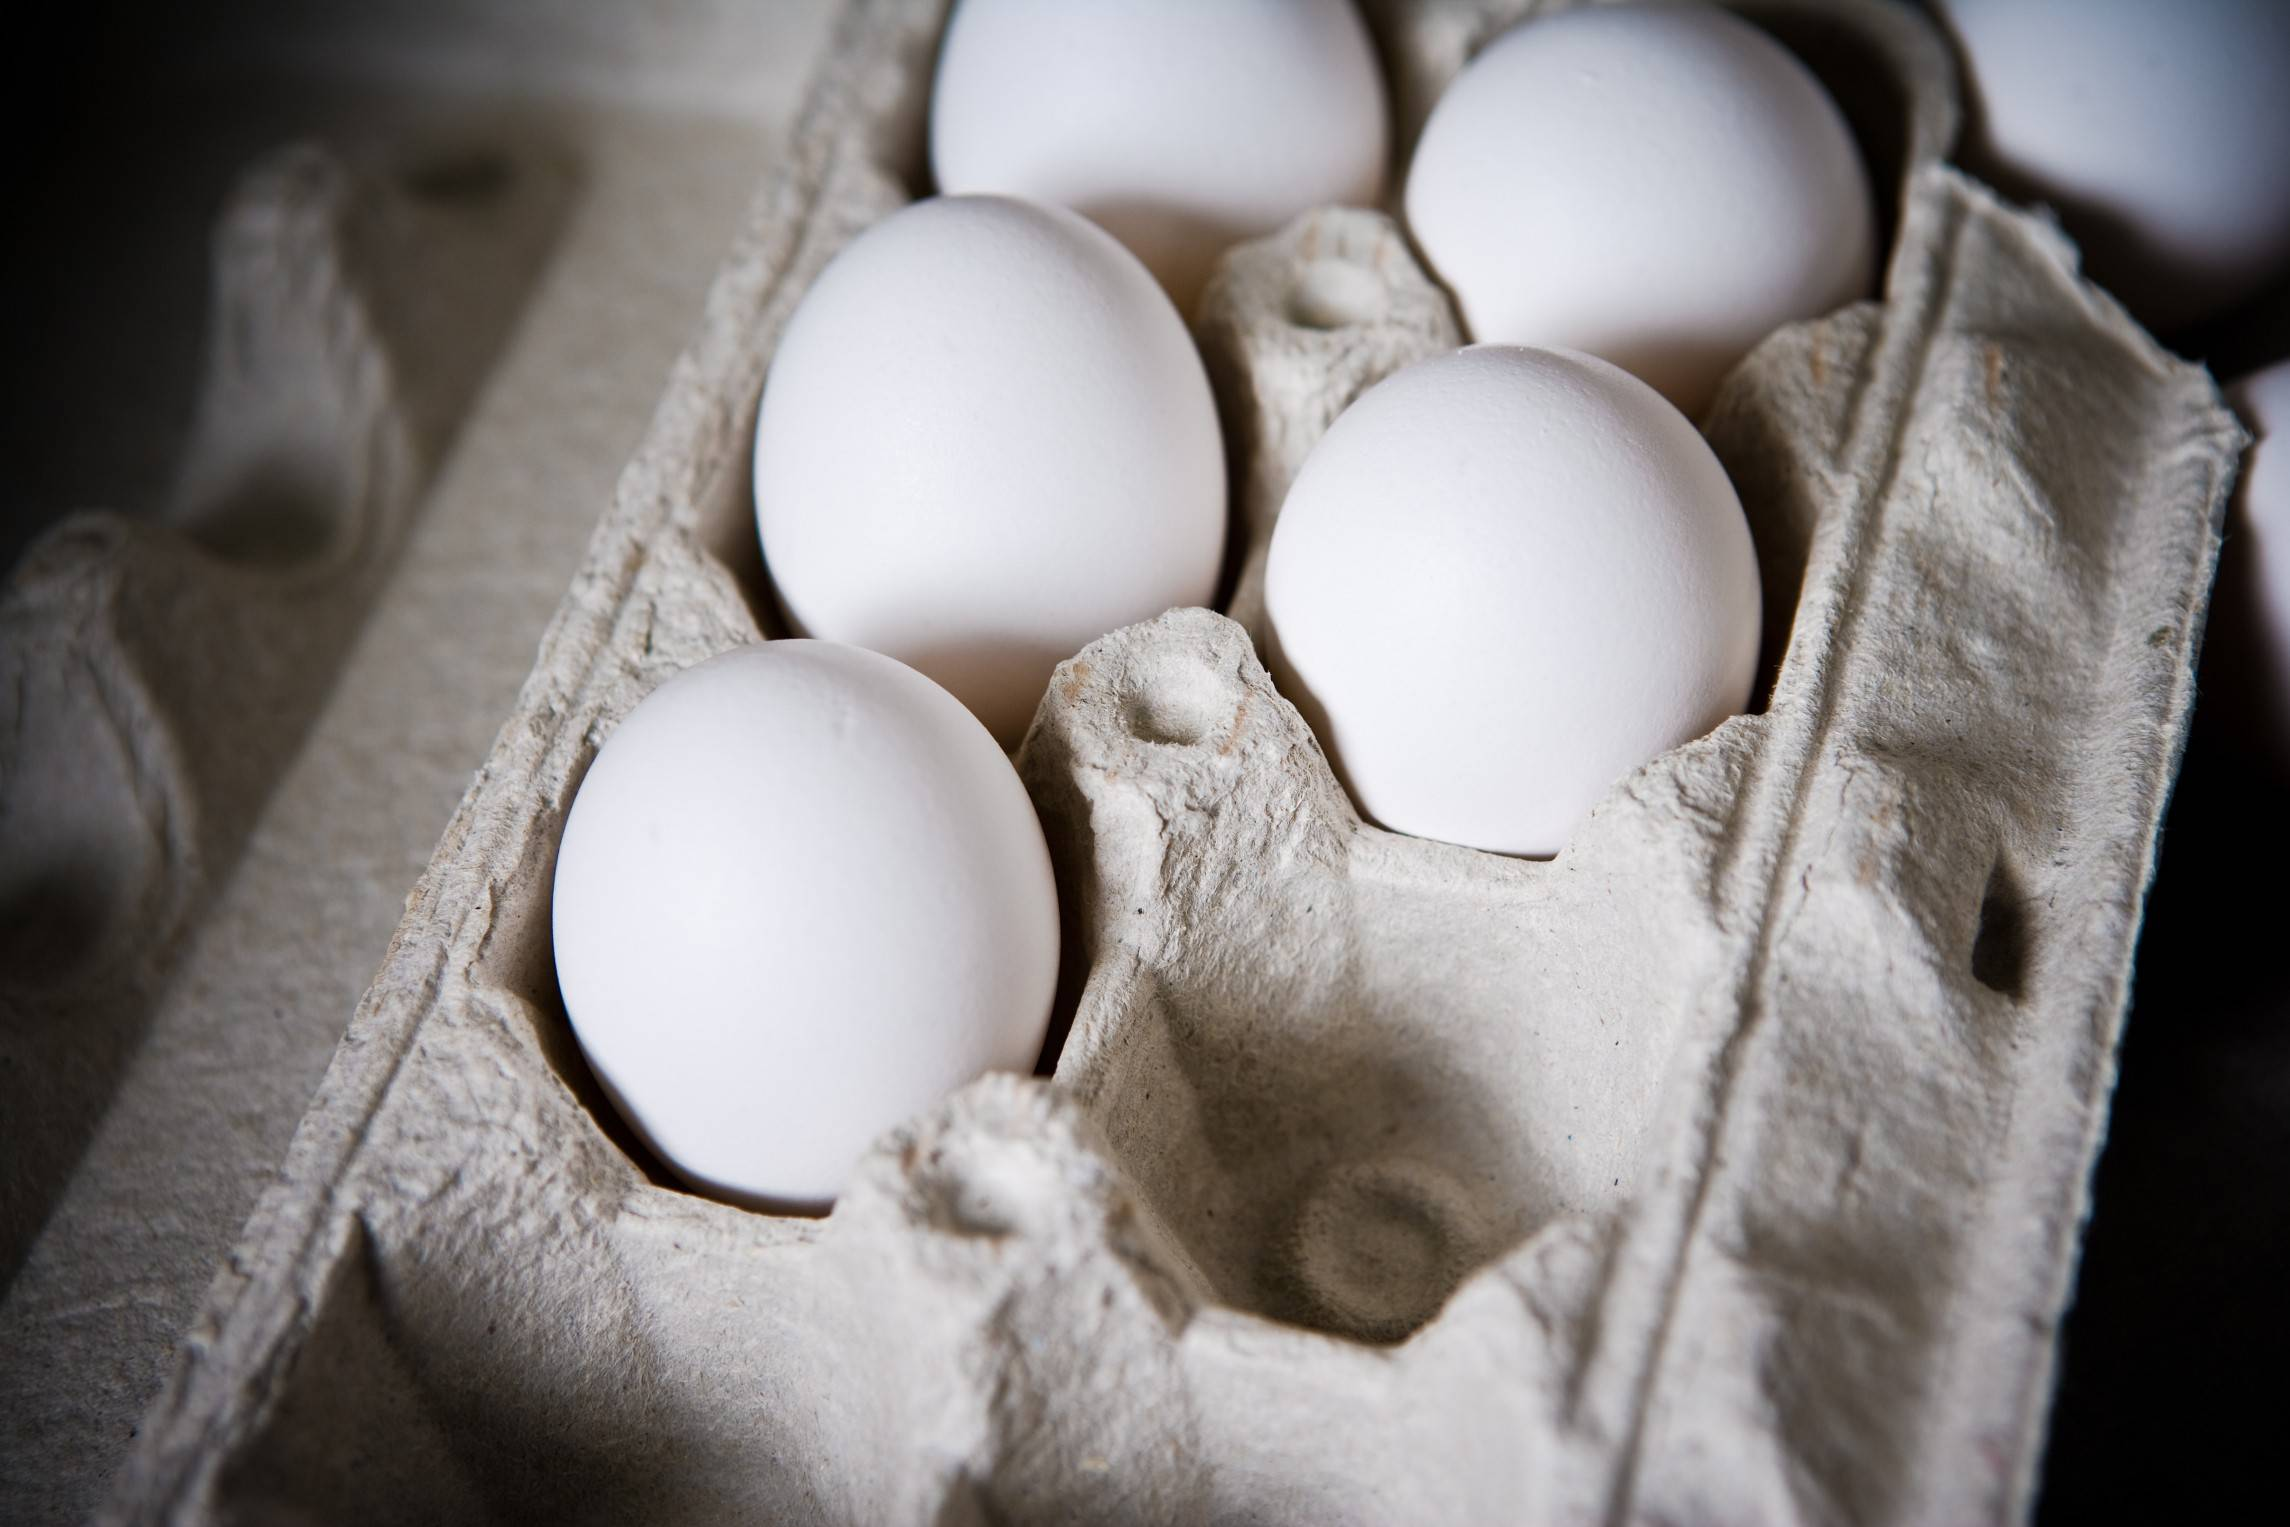 Egg law would keep one cracked egg from spoiling the bunch